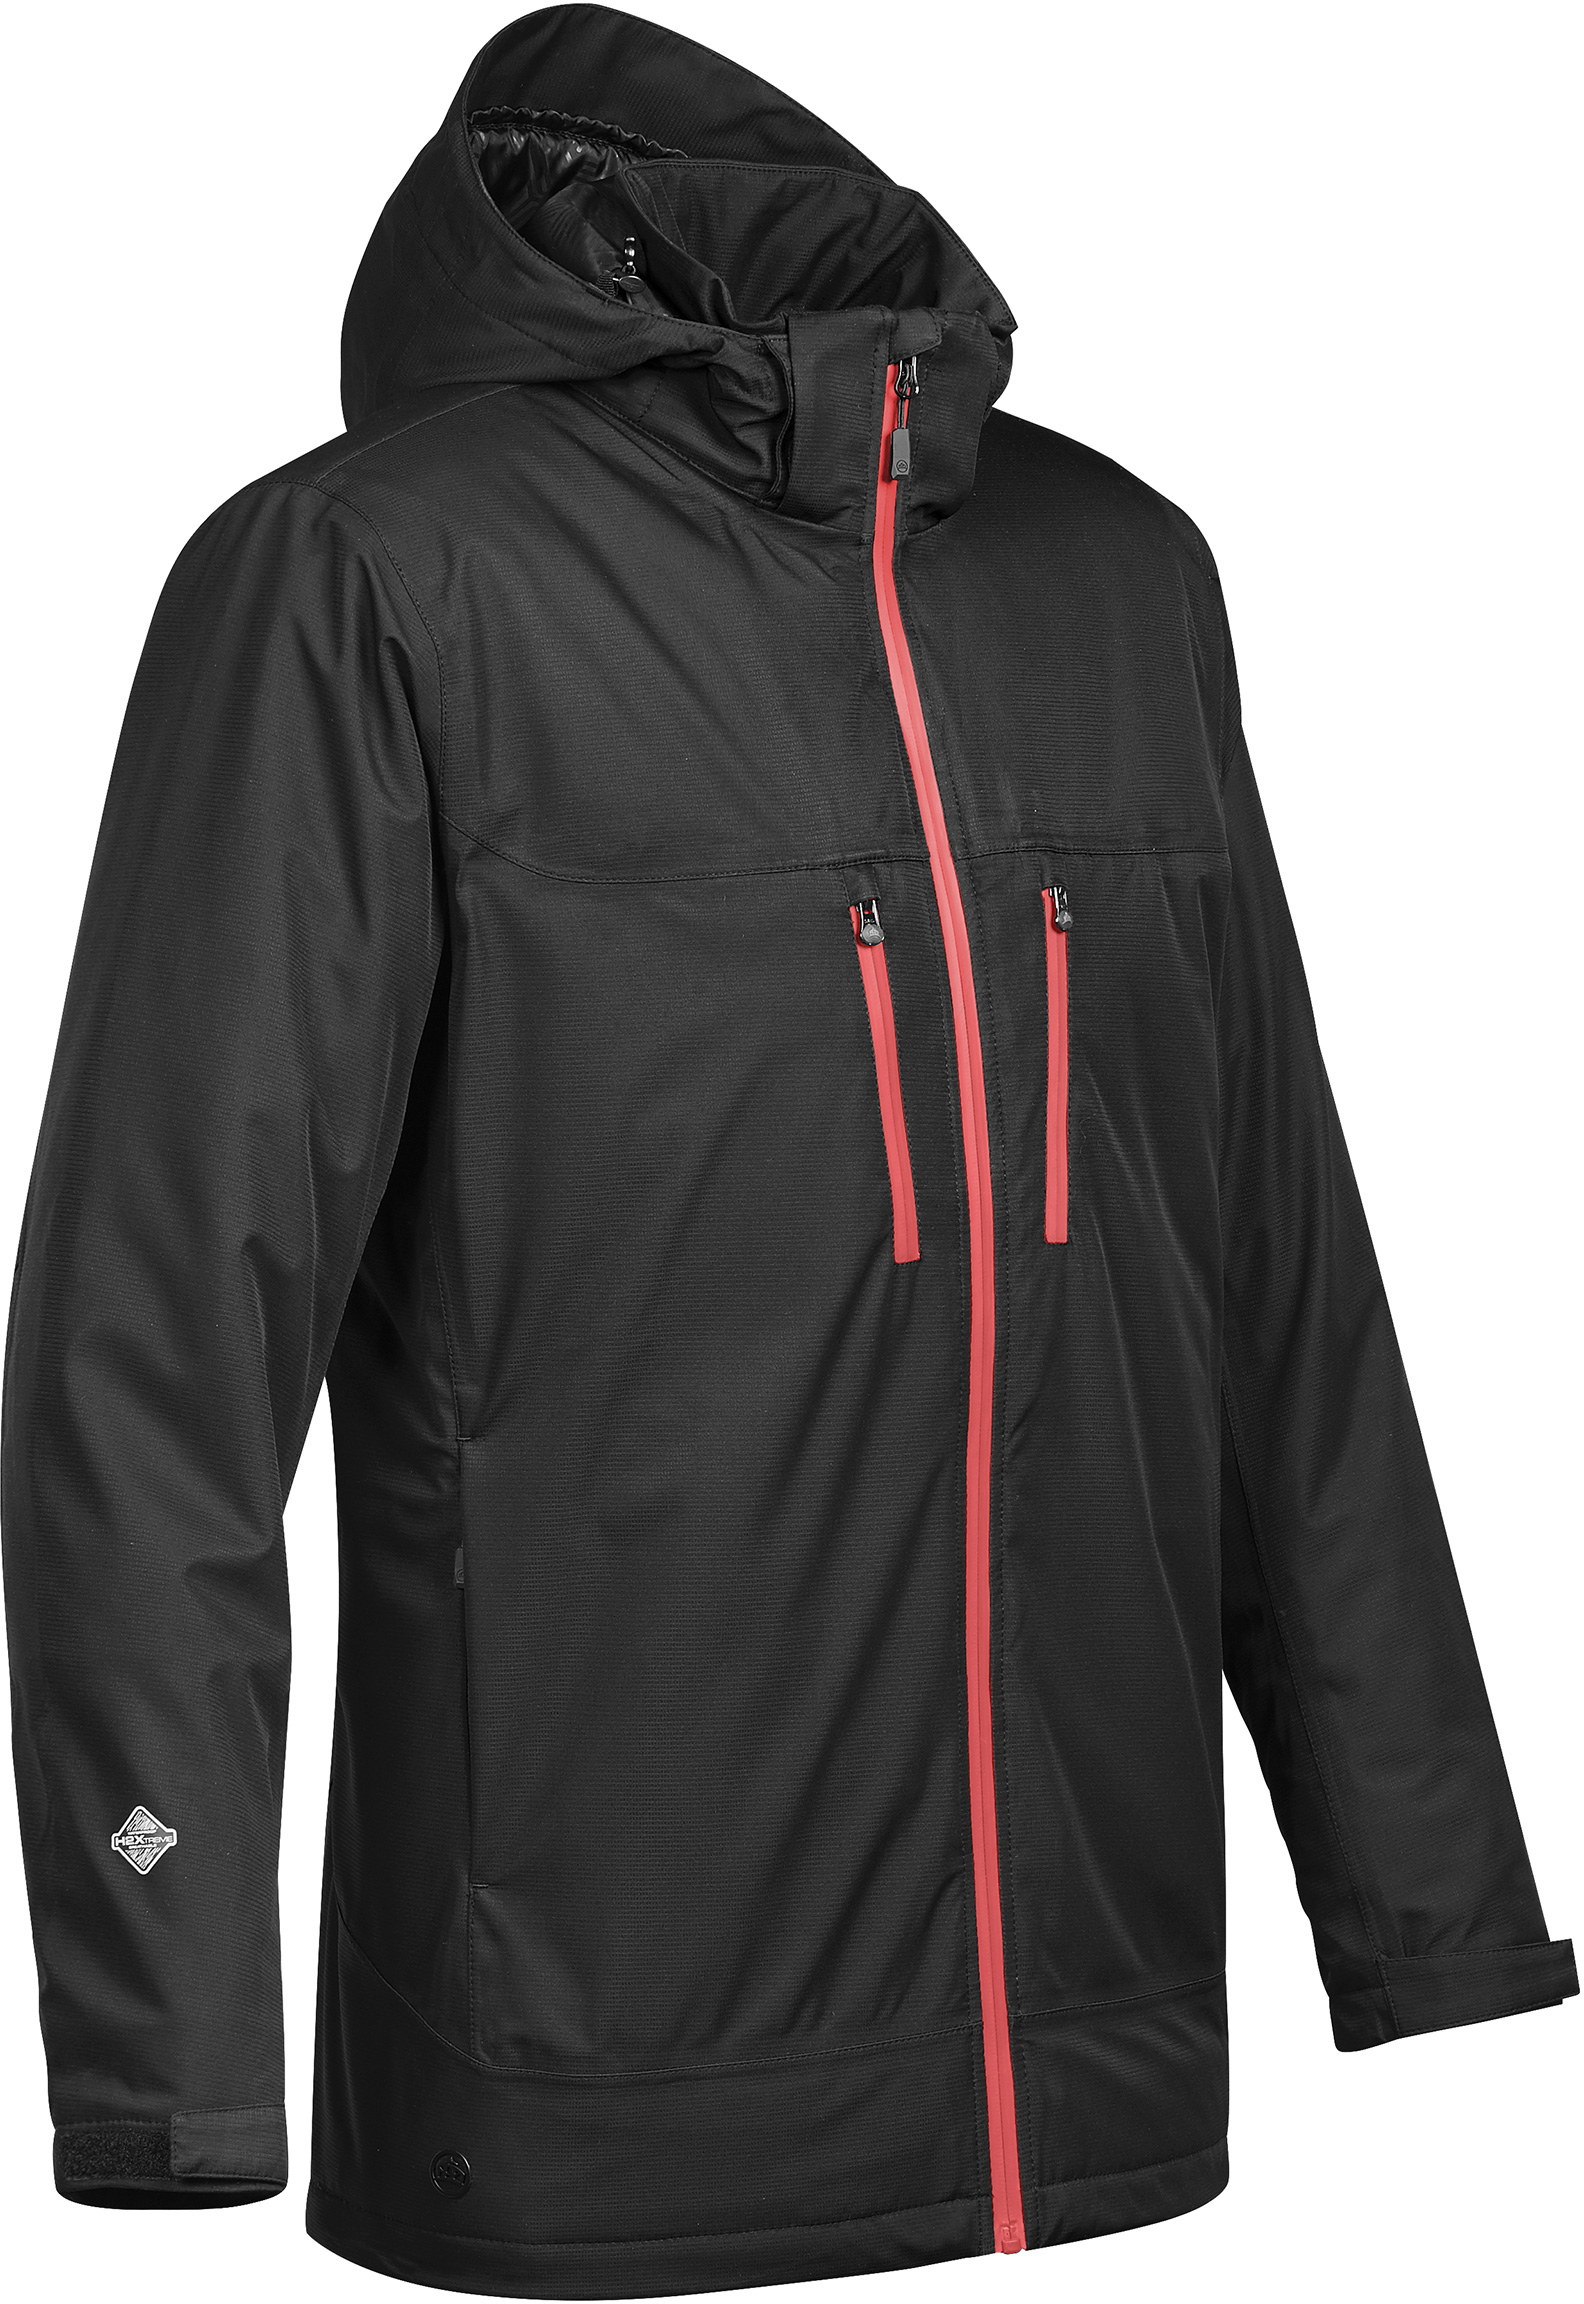 Stormtech EB-3 - Men's Snowburst Thermal Shell Jacket